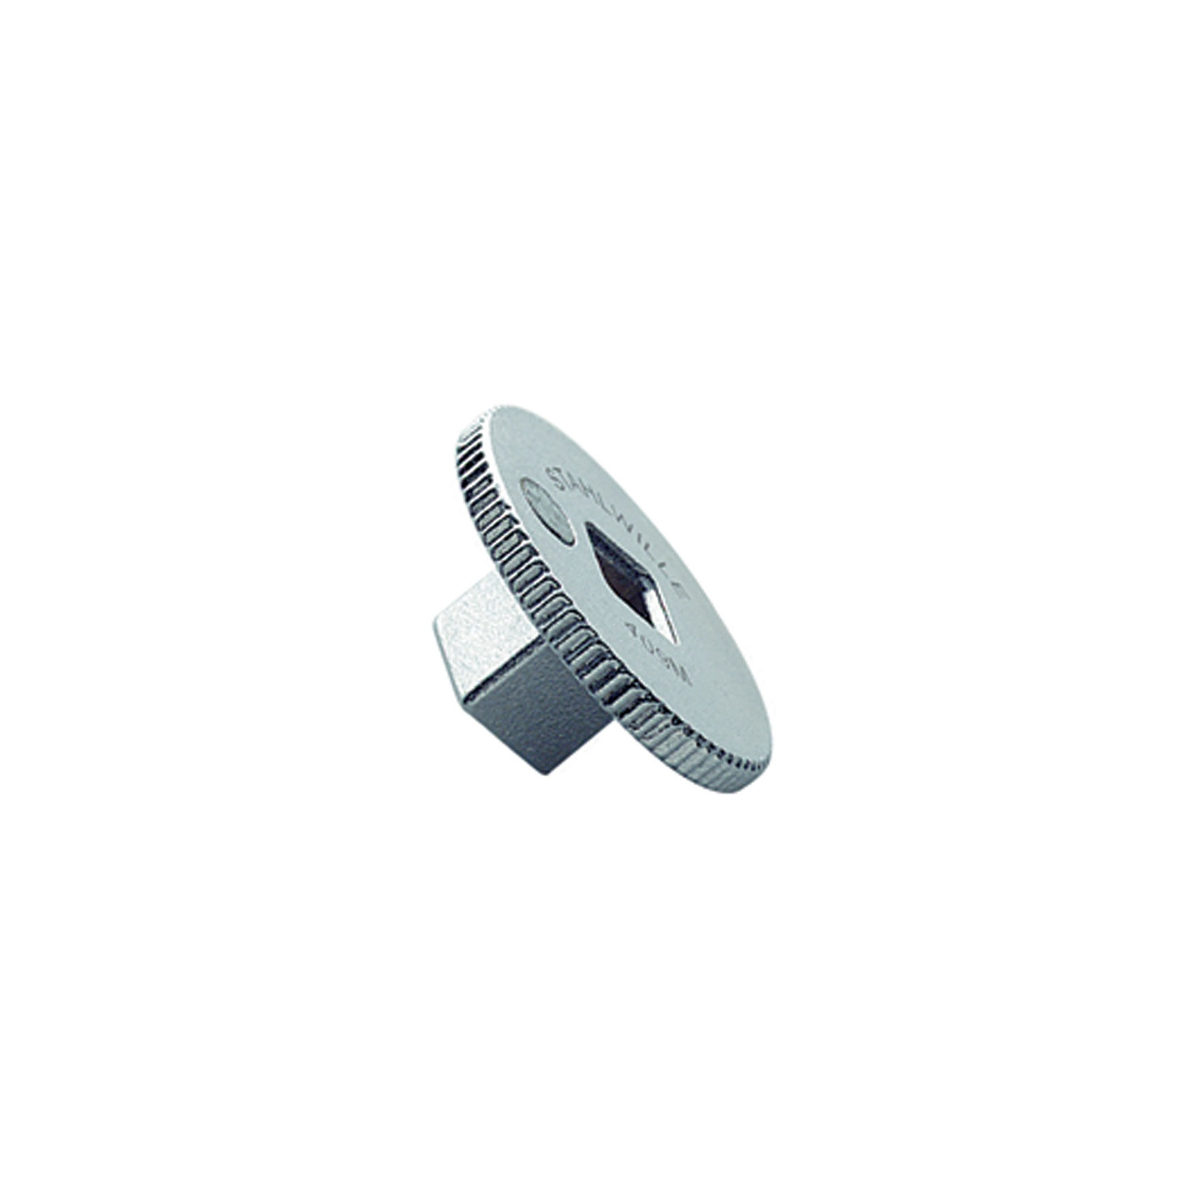 Stahlwille 11030010 Adapter 409M for hand-operated sockets